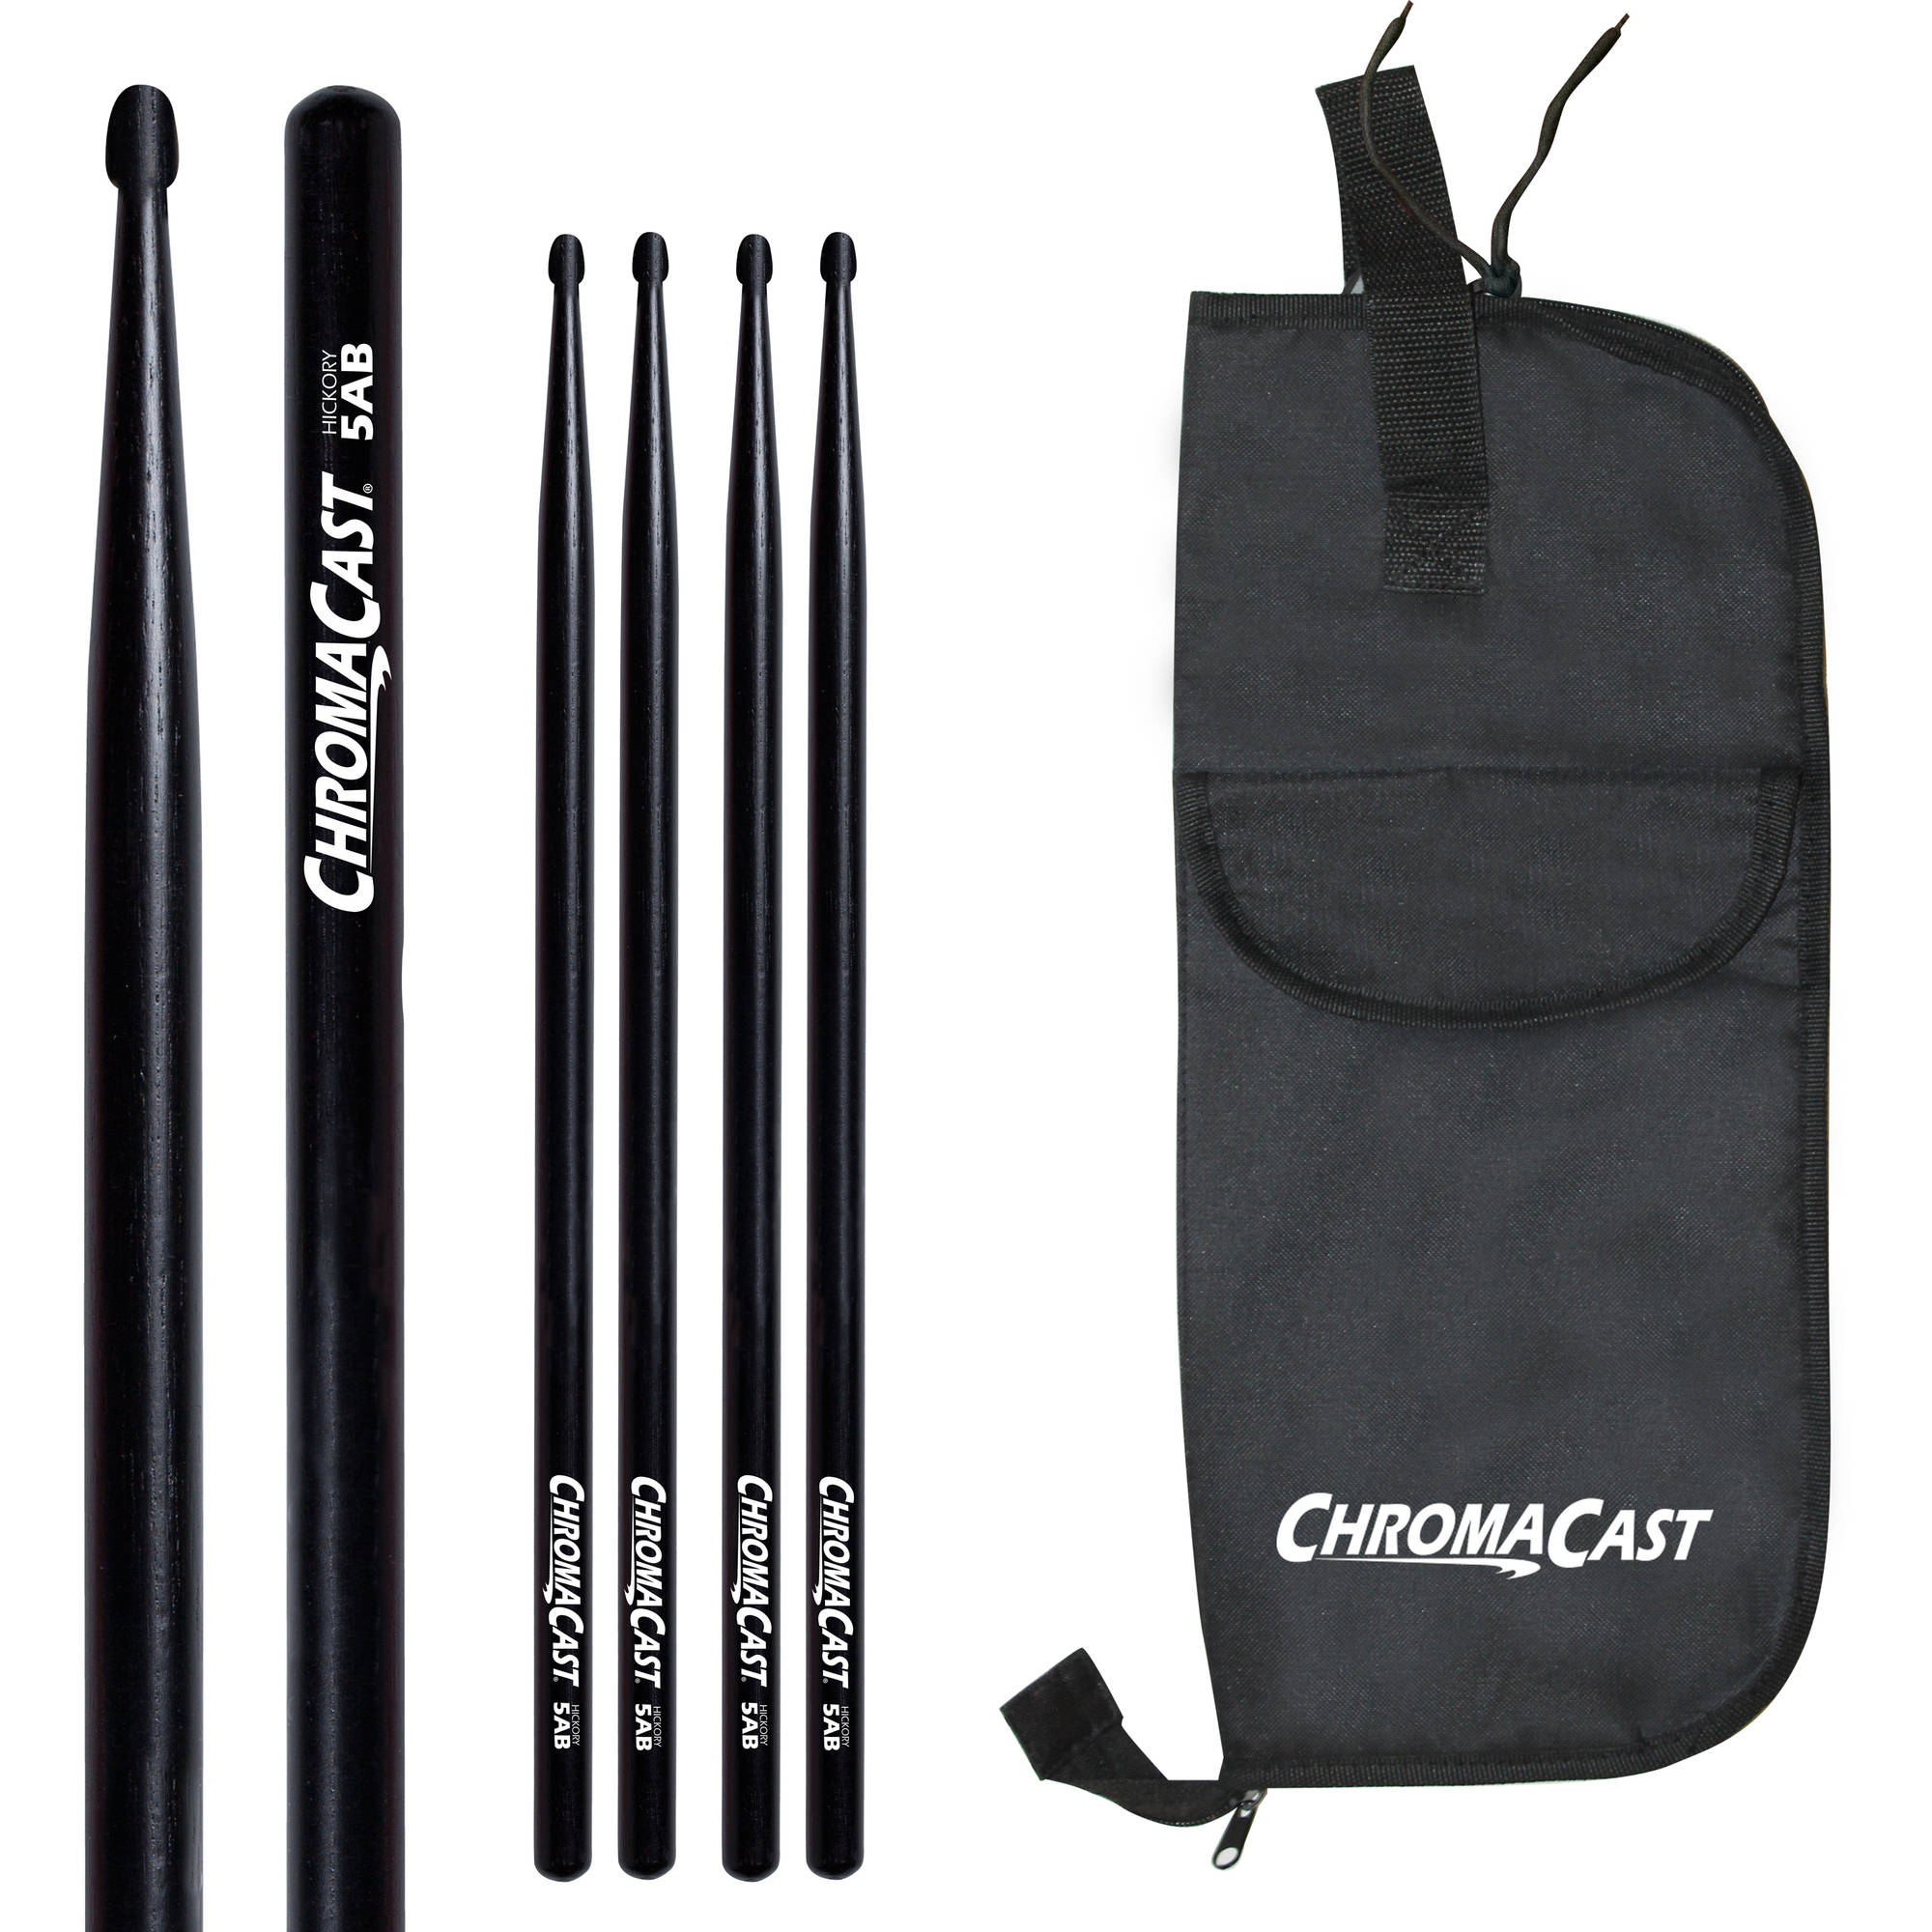 ChromaCast 5A Black Hickory Drumsticks, 3 Pairs with Drumstick Bag by